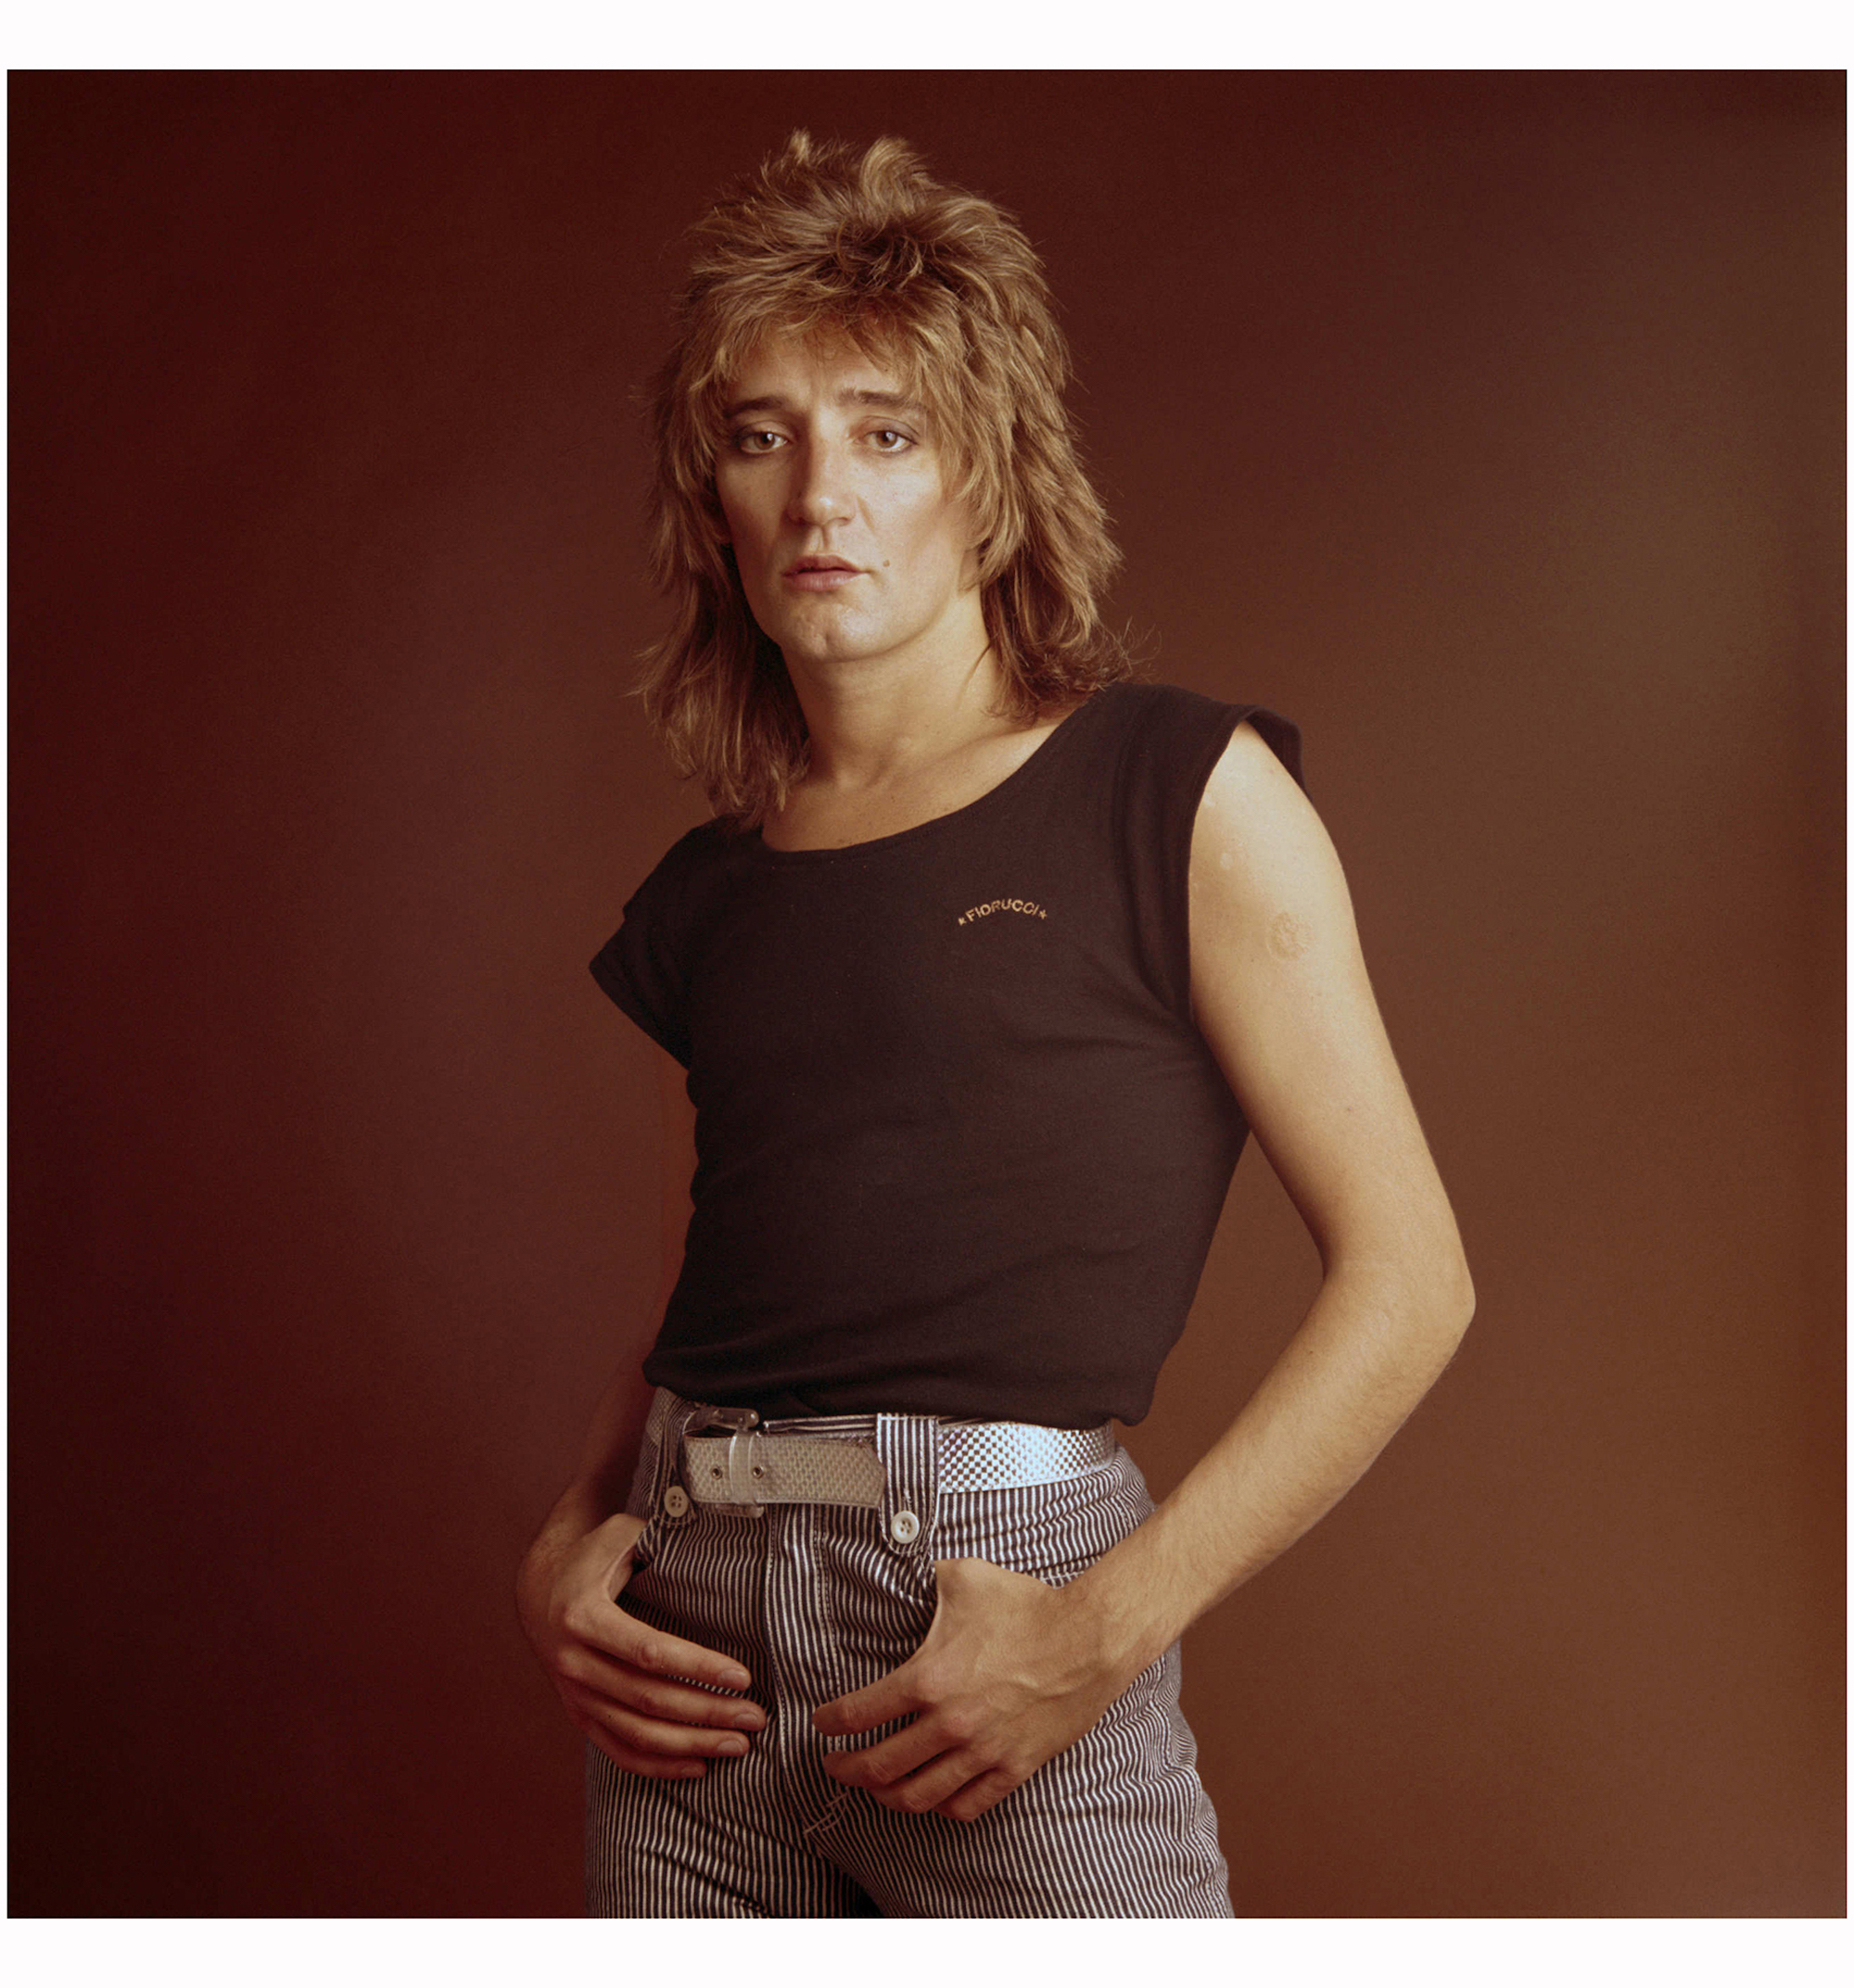 Rod Stewart in Fiorucci archive images